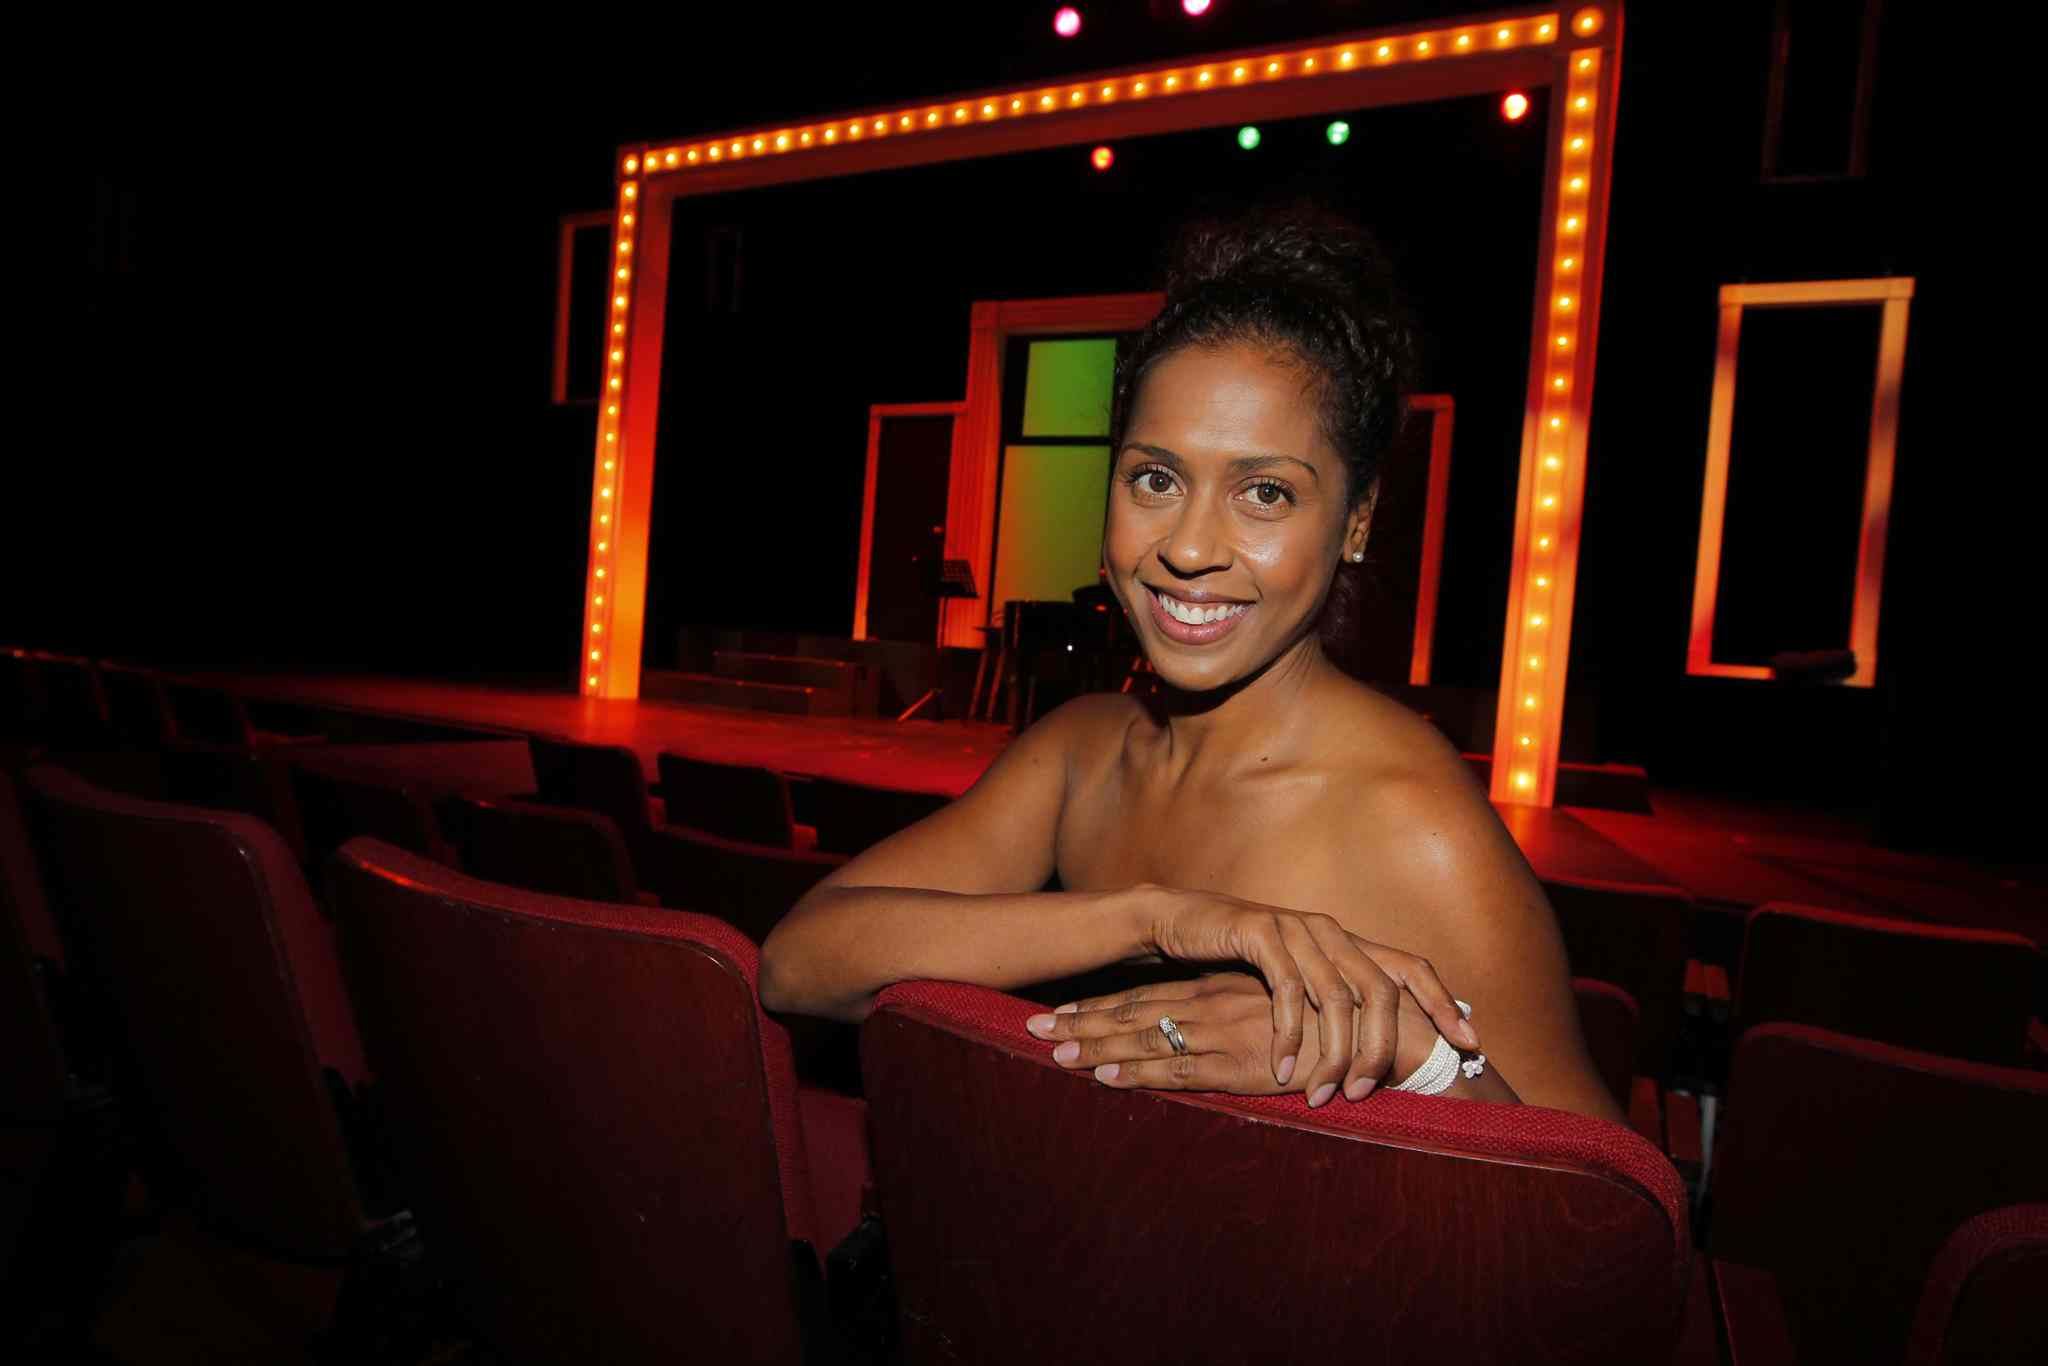 Kimberley Rampersad is finally getting her chance to sit on the other side of the audition desk.